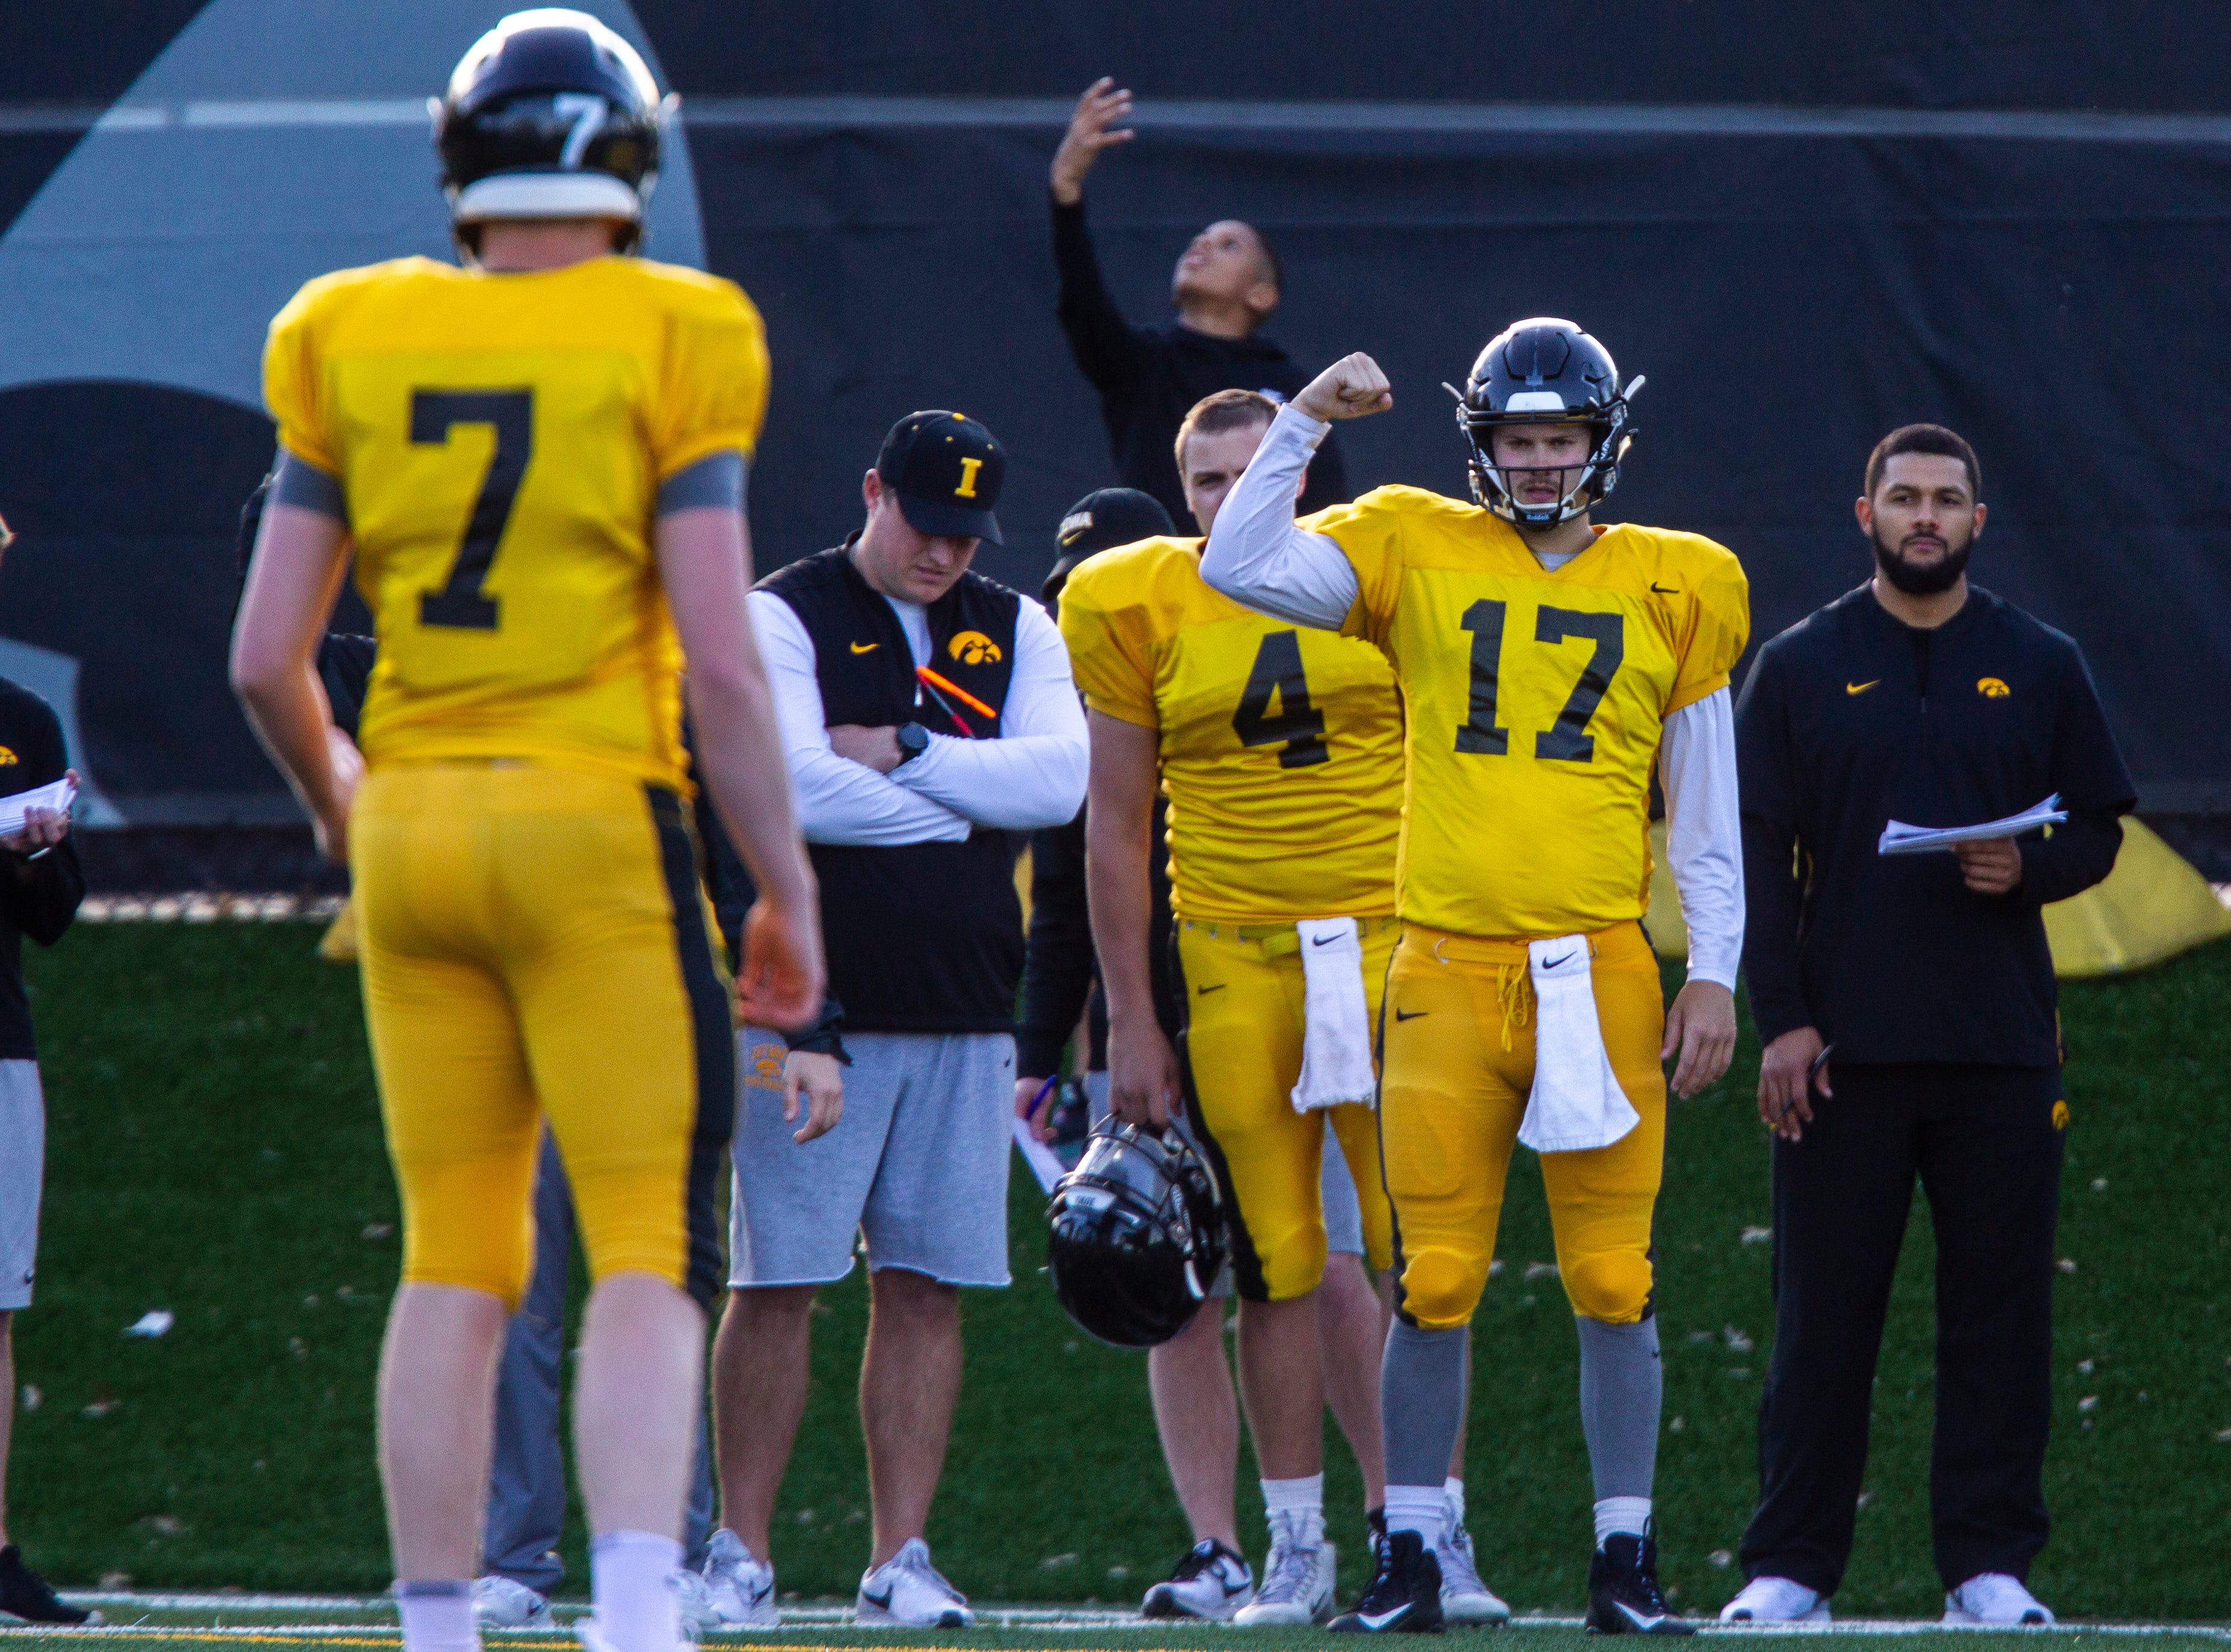 Iowa quarterback Ryan Schmidt (17) gestures to teammates Spencer Petras (7) during the final spring football practice, Friday, April 26, 2019, at the University of Iowa outdoor practice facility in Iowa City, Iowa.